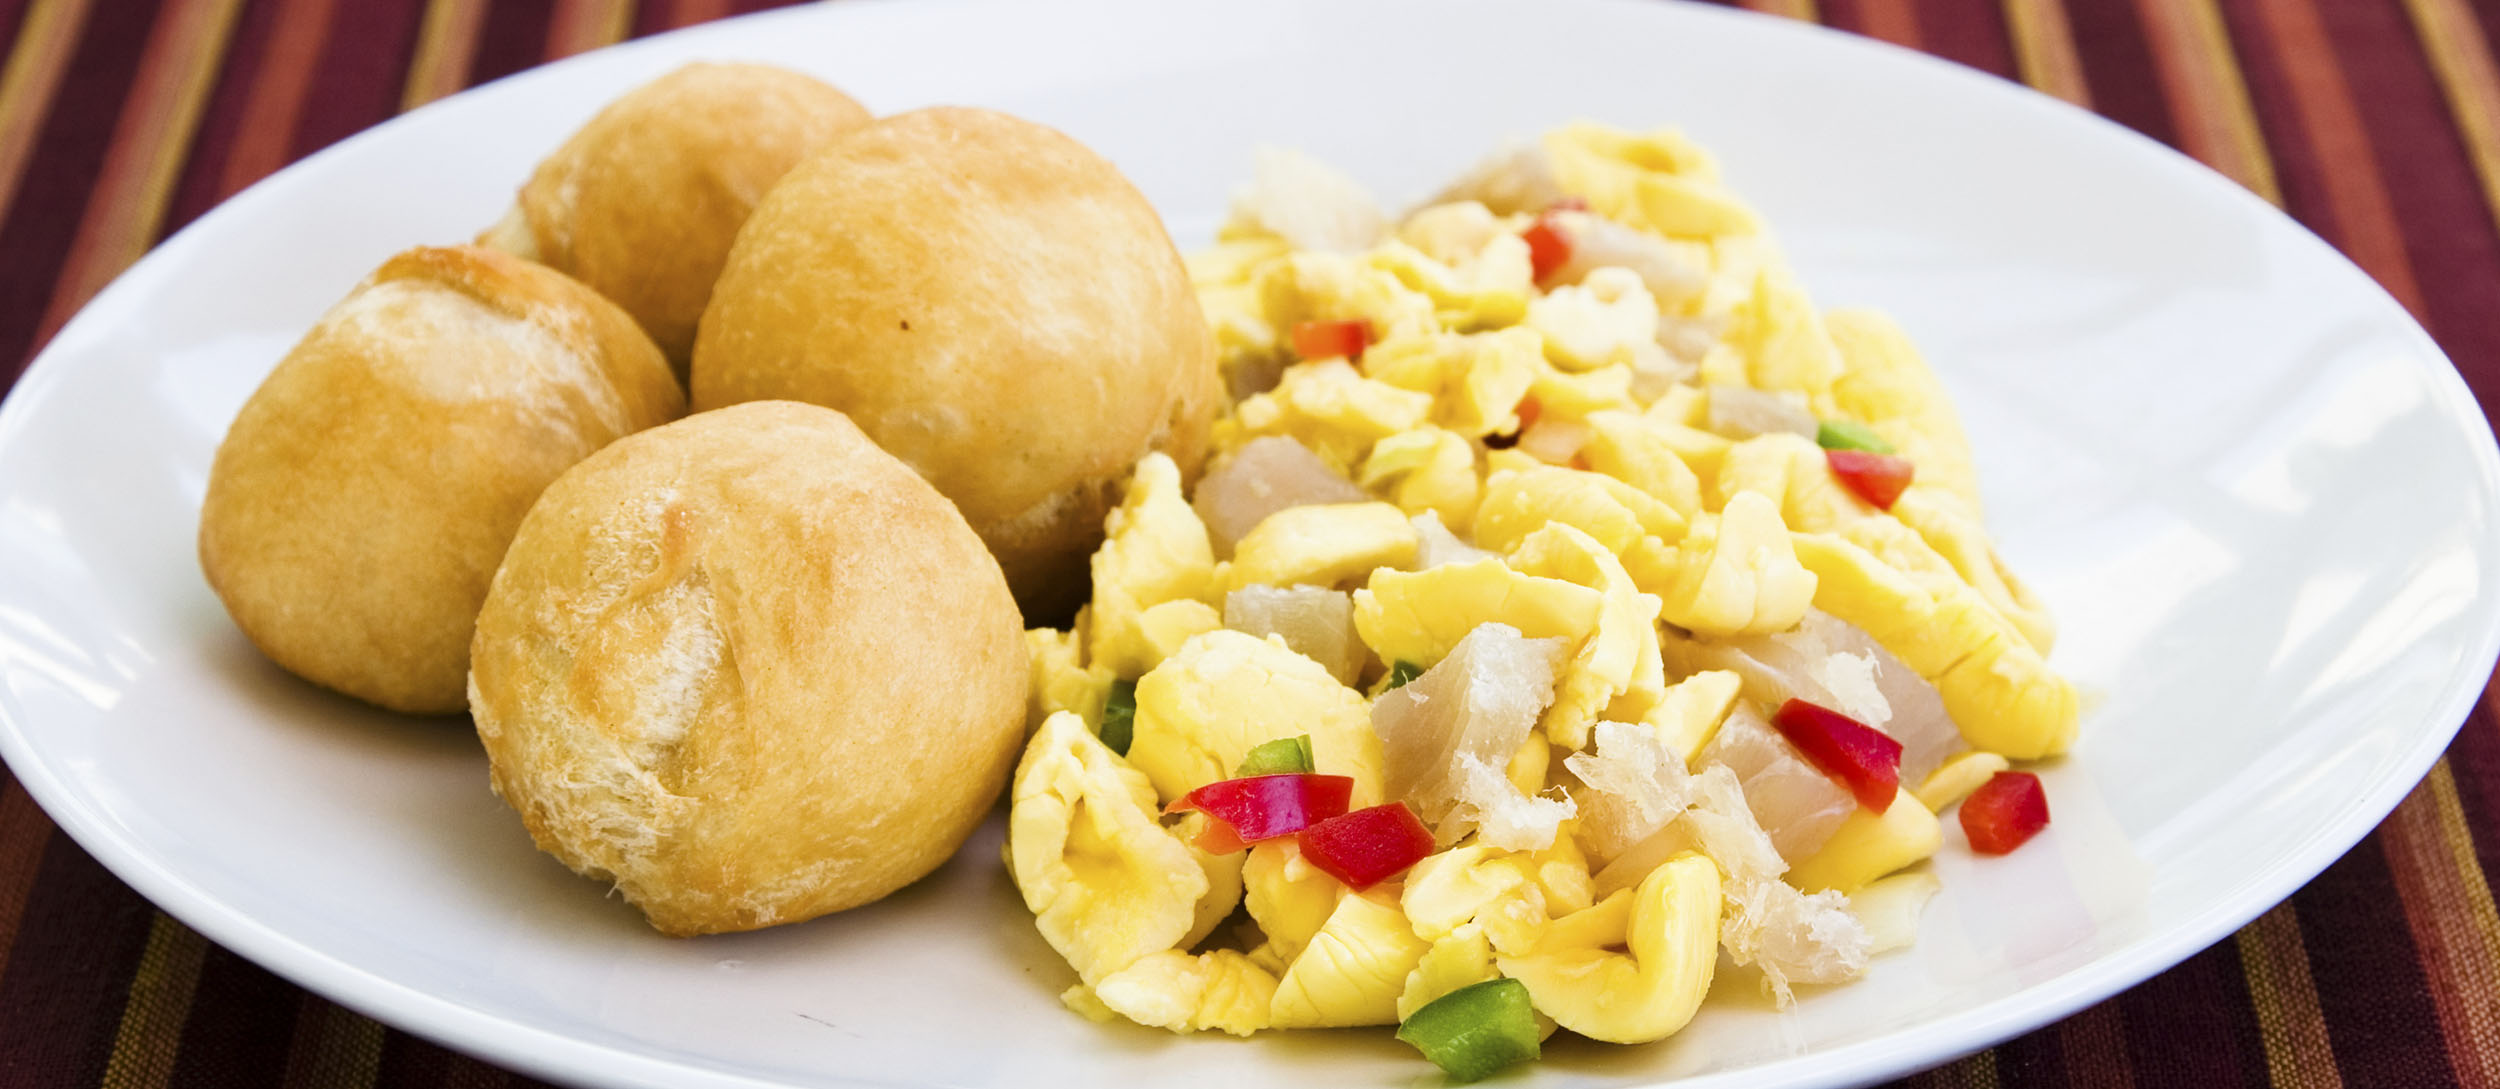 Ackee And Saltfish | Traditional Breakfast From Jamaica, Caribbean ...